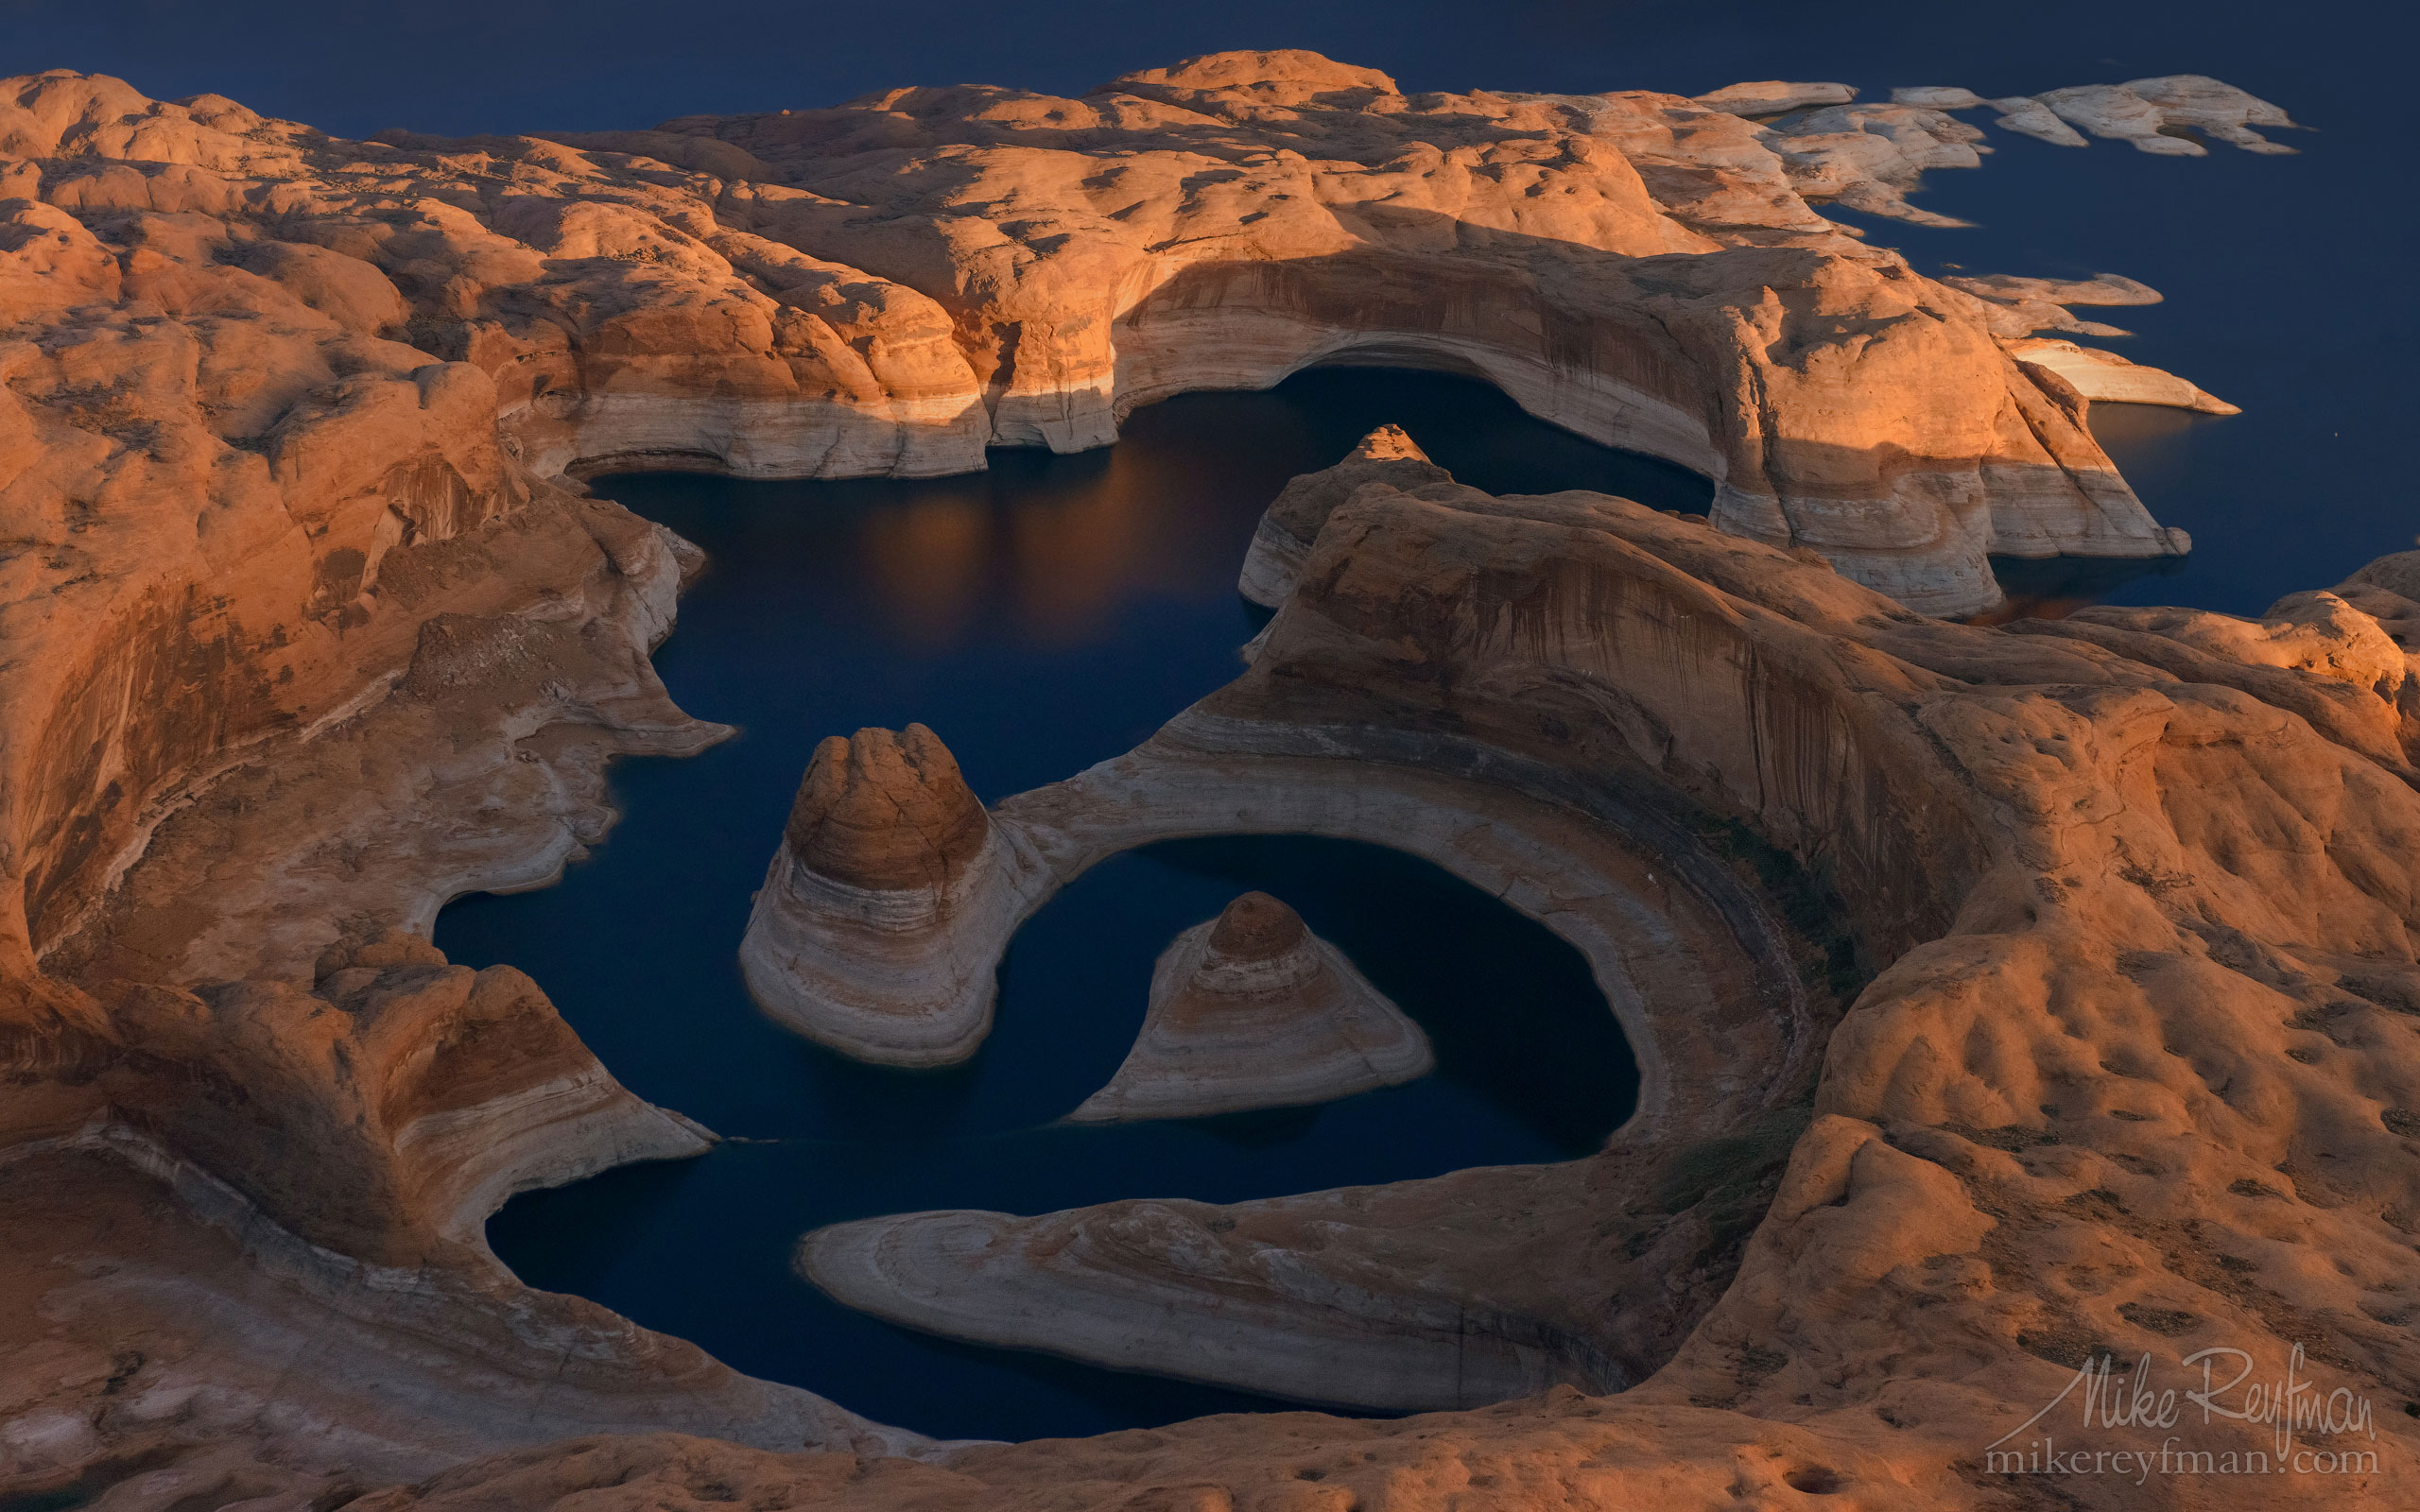 Reflection Canyon. Colorado River, Lake Powell, Glen Canyon NRA. Uta/Arizona, USA. Aerial 103-LP3_D8C9553.jpg - Lake Powell, Glen Canyon NAR. Colorado and Sun Juan Rivers. Utah/Arizona, USA  - Mike Reyfman Photography